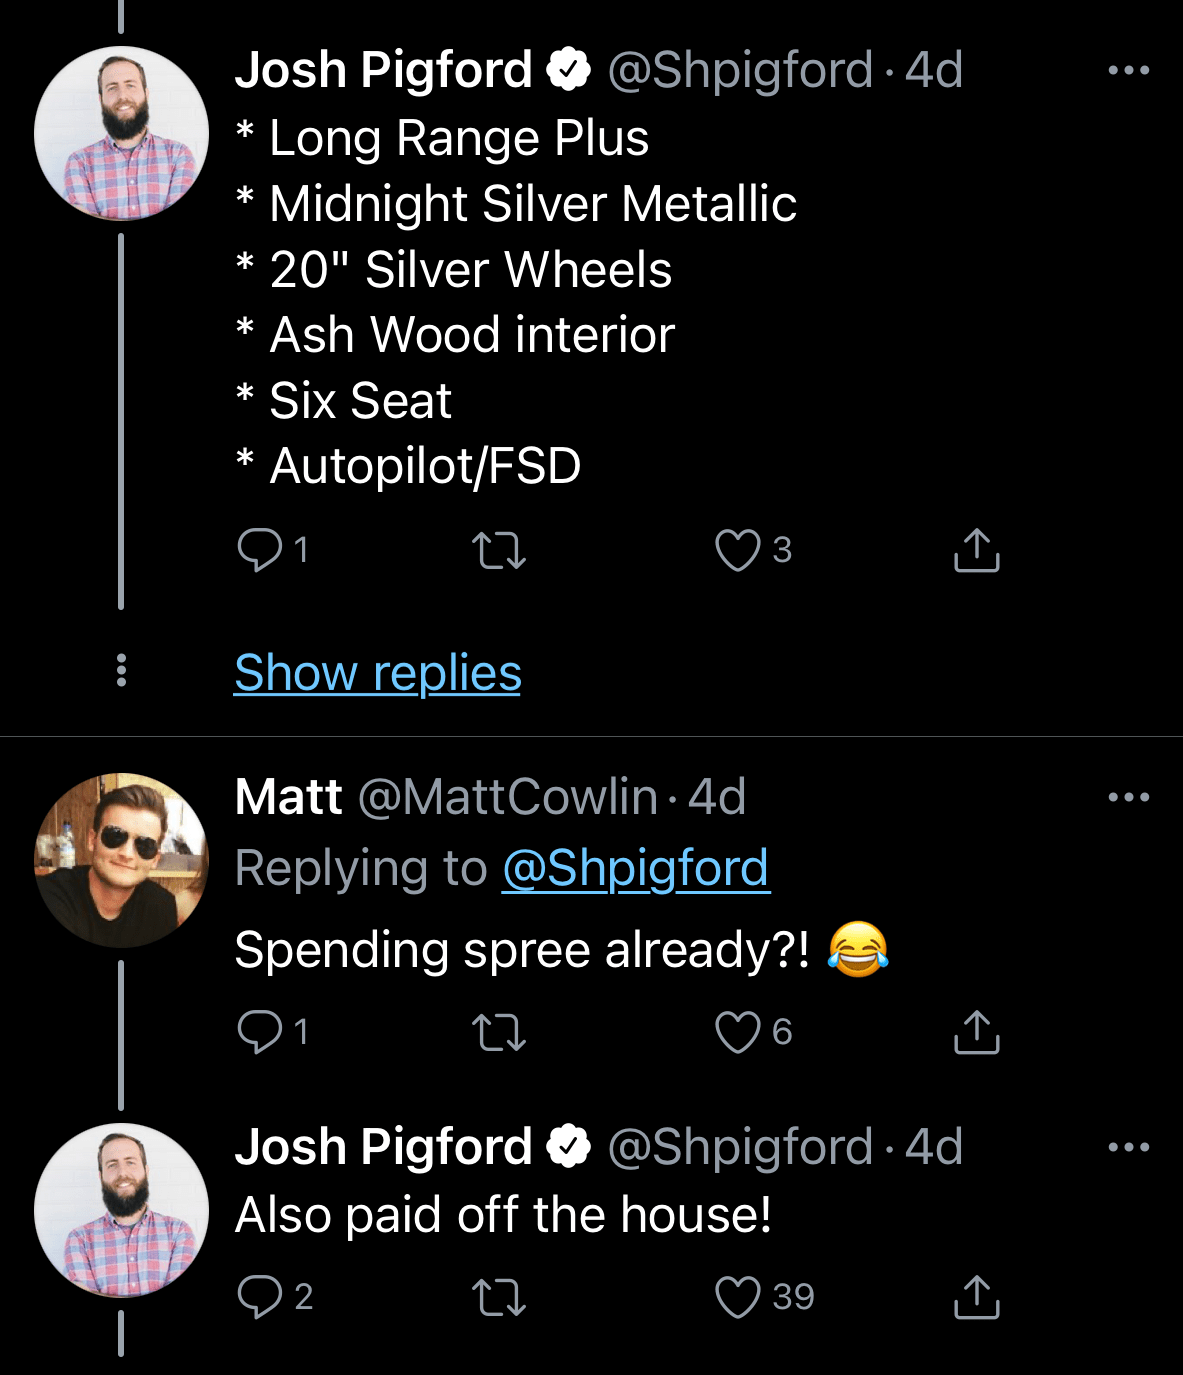 Don't join a startup - Founders like Josh Pigford will get all the spoils and brag about it on Twitter